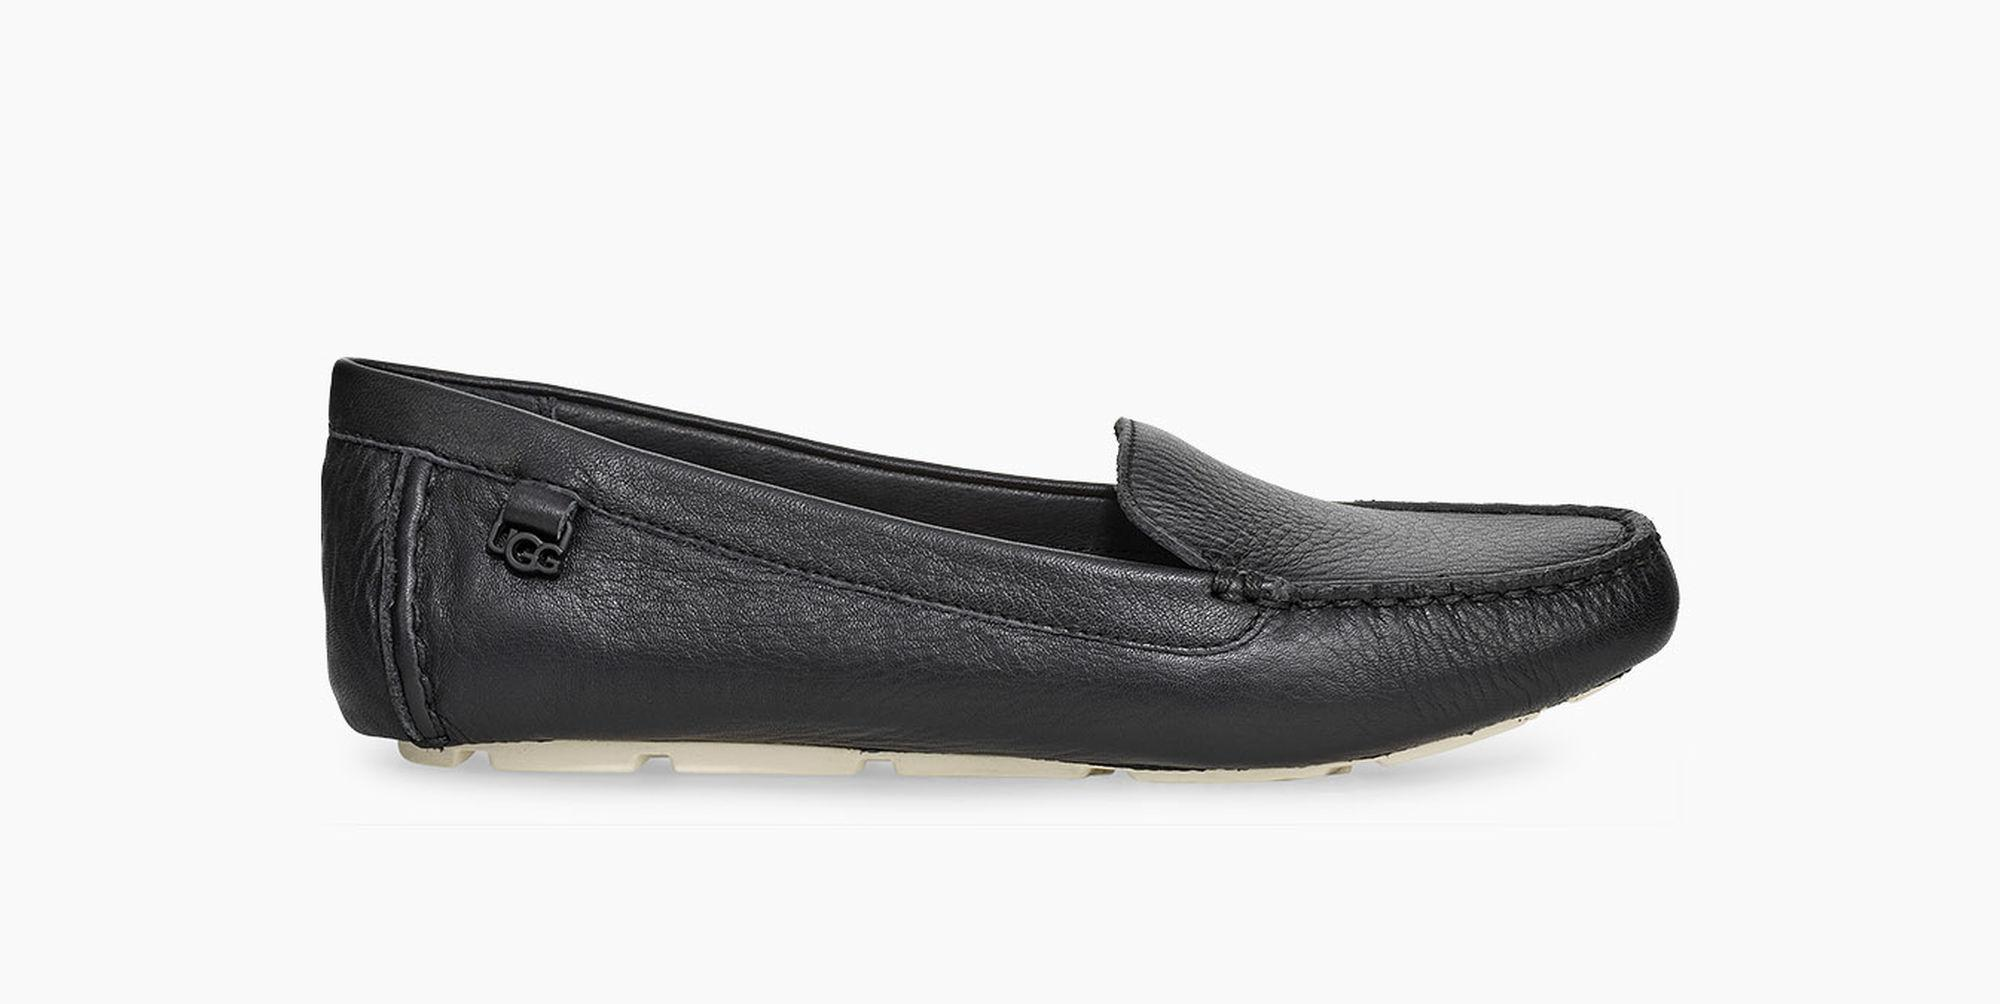 be15e0d9d41 Lyst - UGG Women s Flores Loafers in Black